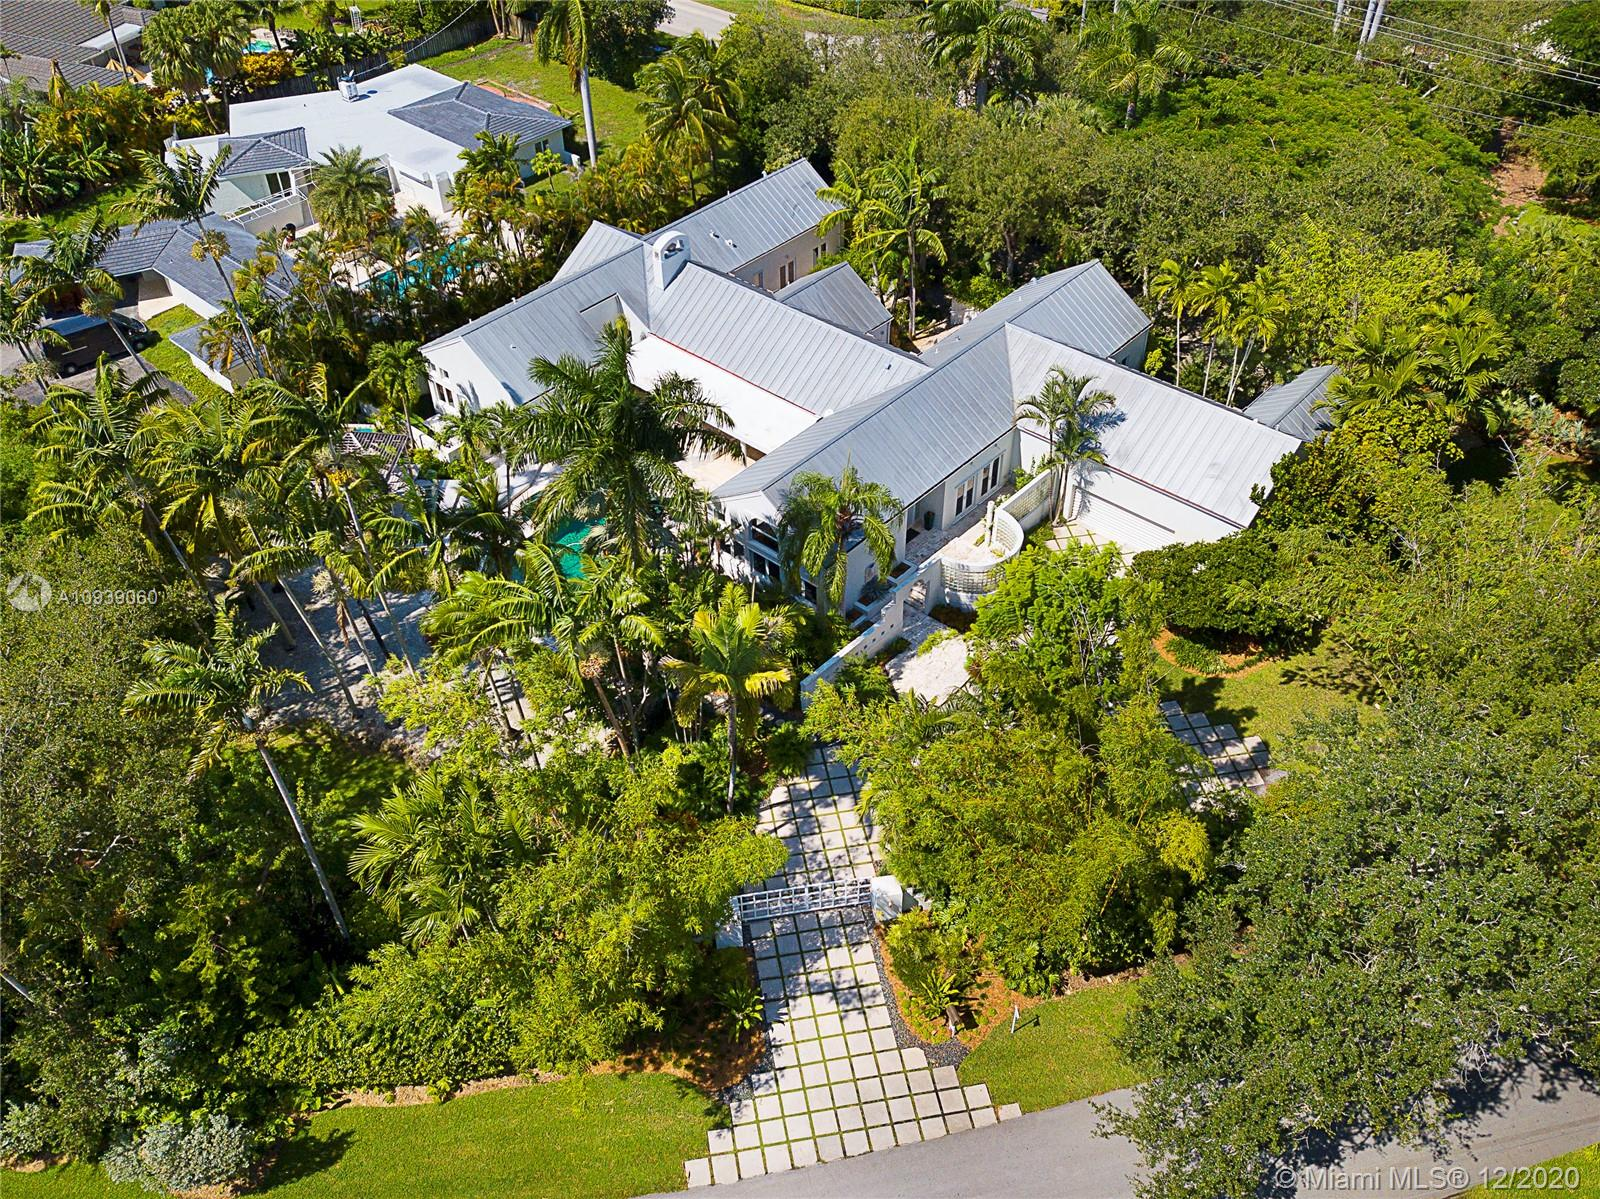 Situated on a lush acre w/ beach like design by Robert Parsley, this 6 BR, 7 BA 5,858 sq ft contemporary is an oasis in the heart of Miami!  Courtyard entrance leads to gracious formal liv & din rms w/ vaulted ceilings & oversized windows that give the space beautiful light & a sense of grandeur.  That feeling continues into the chef's kitchen w/ professional appliances open to the fam rm w/ fireplace, bar, banks of French drs & transom wndws. The split BR plan features master suite w/ sitting rm, large BA & 2 walk-in closets + 2 brms & baths to one side, 2 add'l BRs w/ en-suite BAs on the opposite side, + staff BR or man cave.  This 1-story home in a soon-to-be-gated community is the perfect opportunity to live in Coral Gables w/ access to the best schools a stone's throw away!